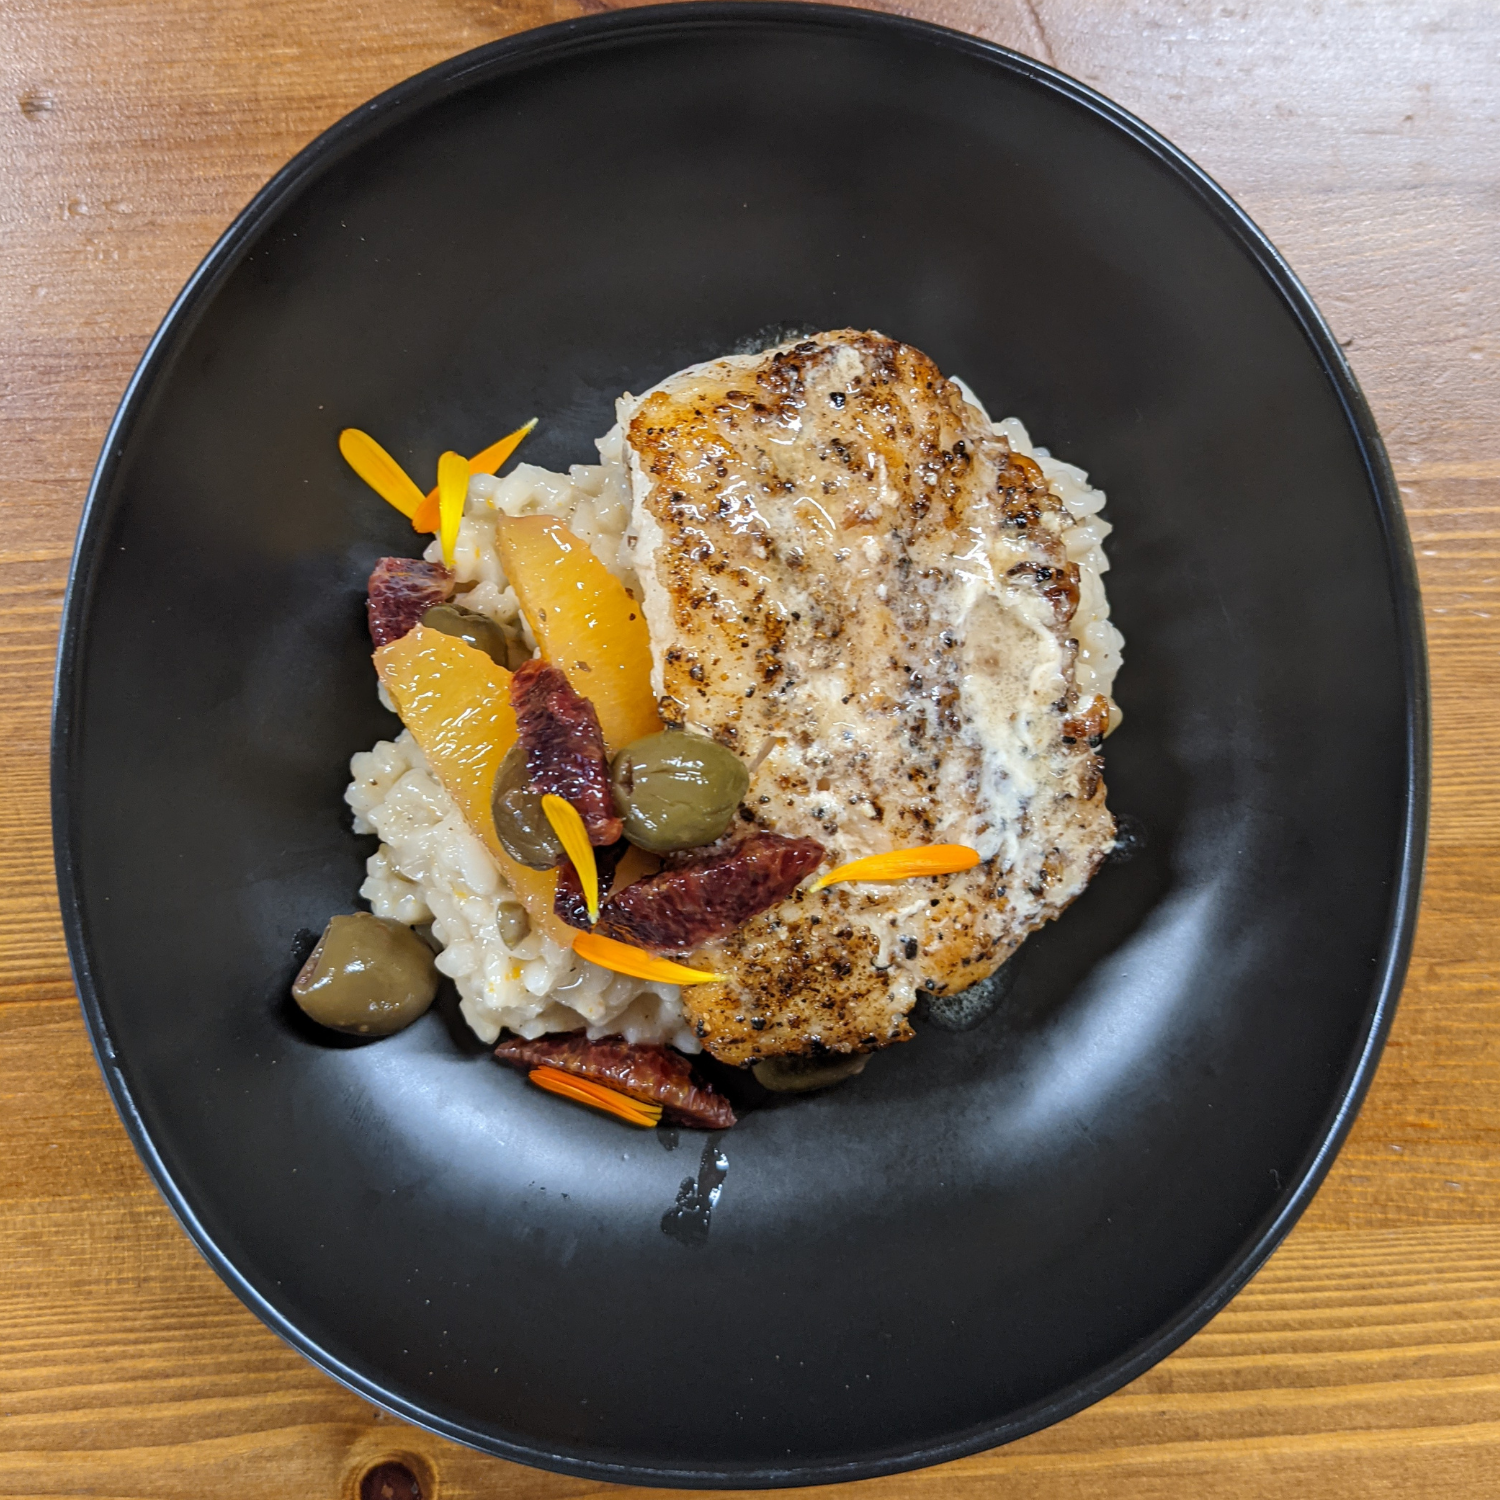 Spice crusted Lingcod on a bed of risotto with olives, and orange slices.